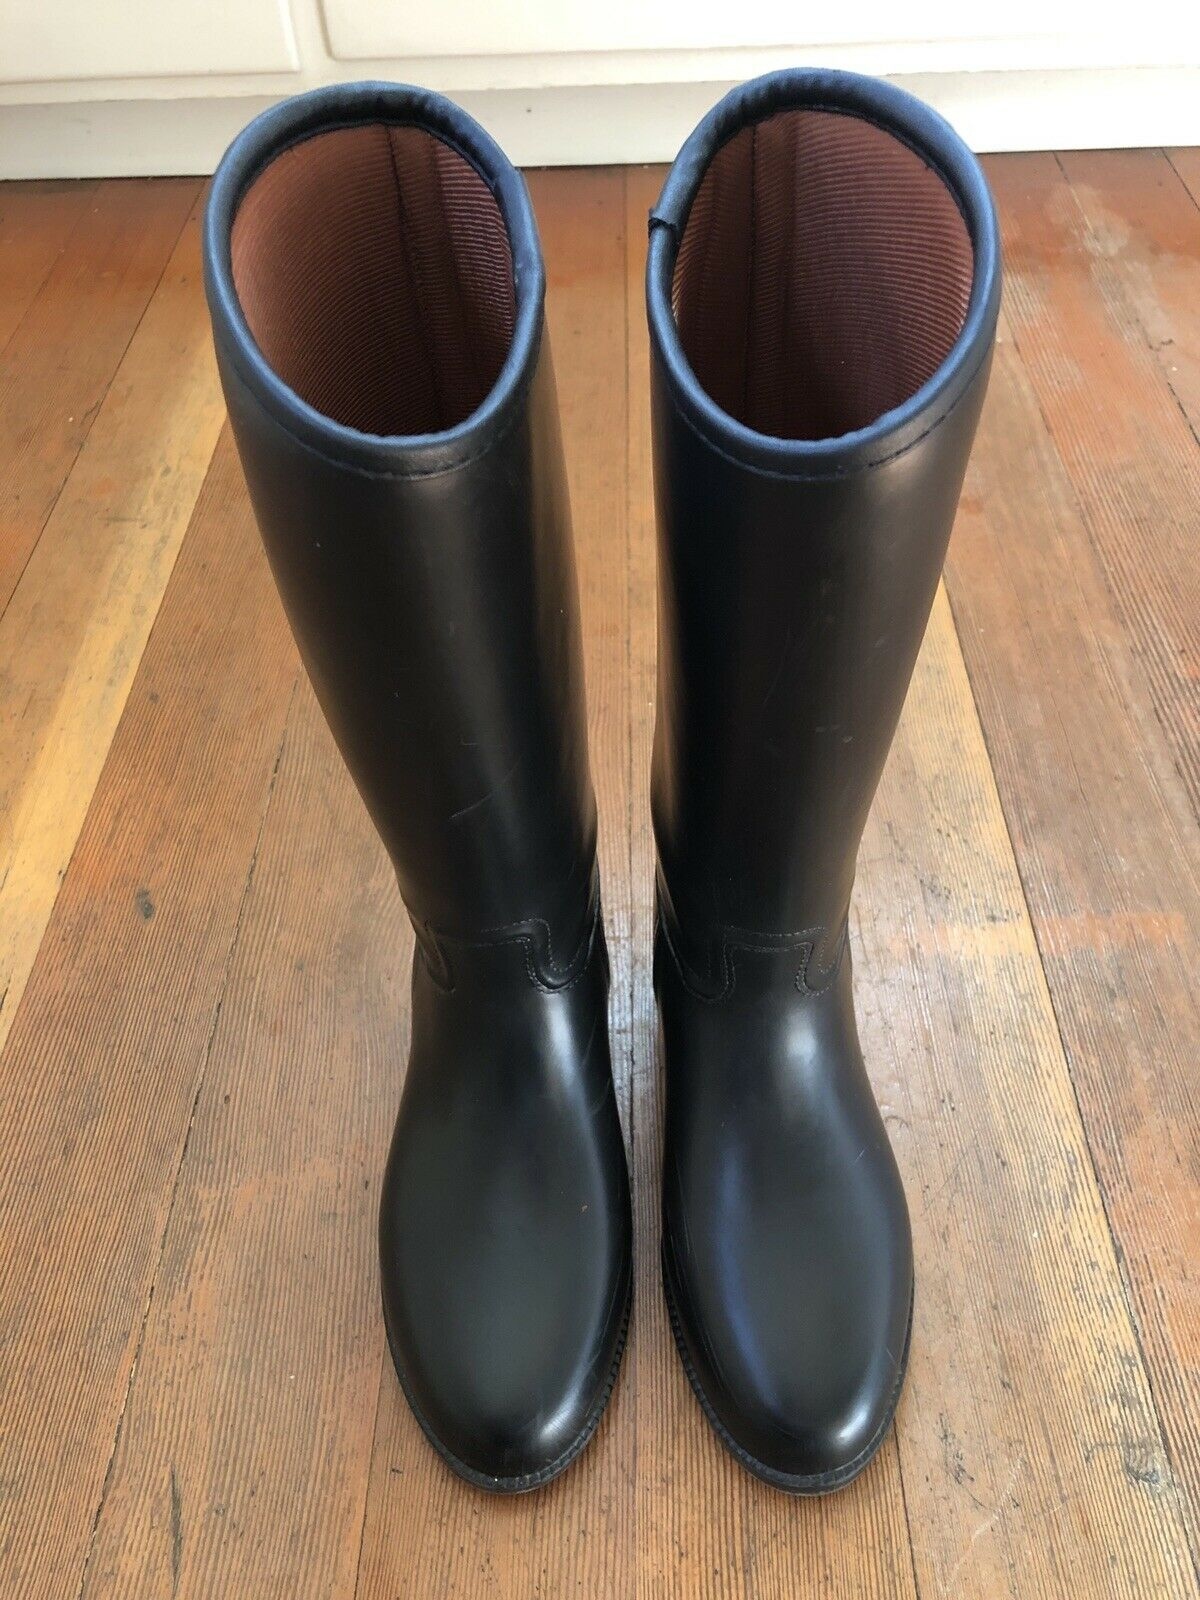 Kid's Riding Boots By Daslo Europe Brand Size 32 US 13 1 2